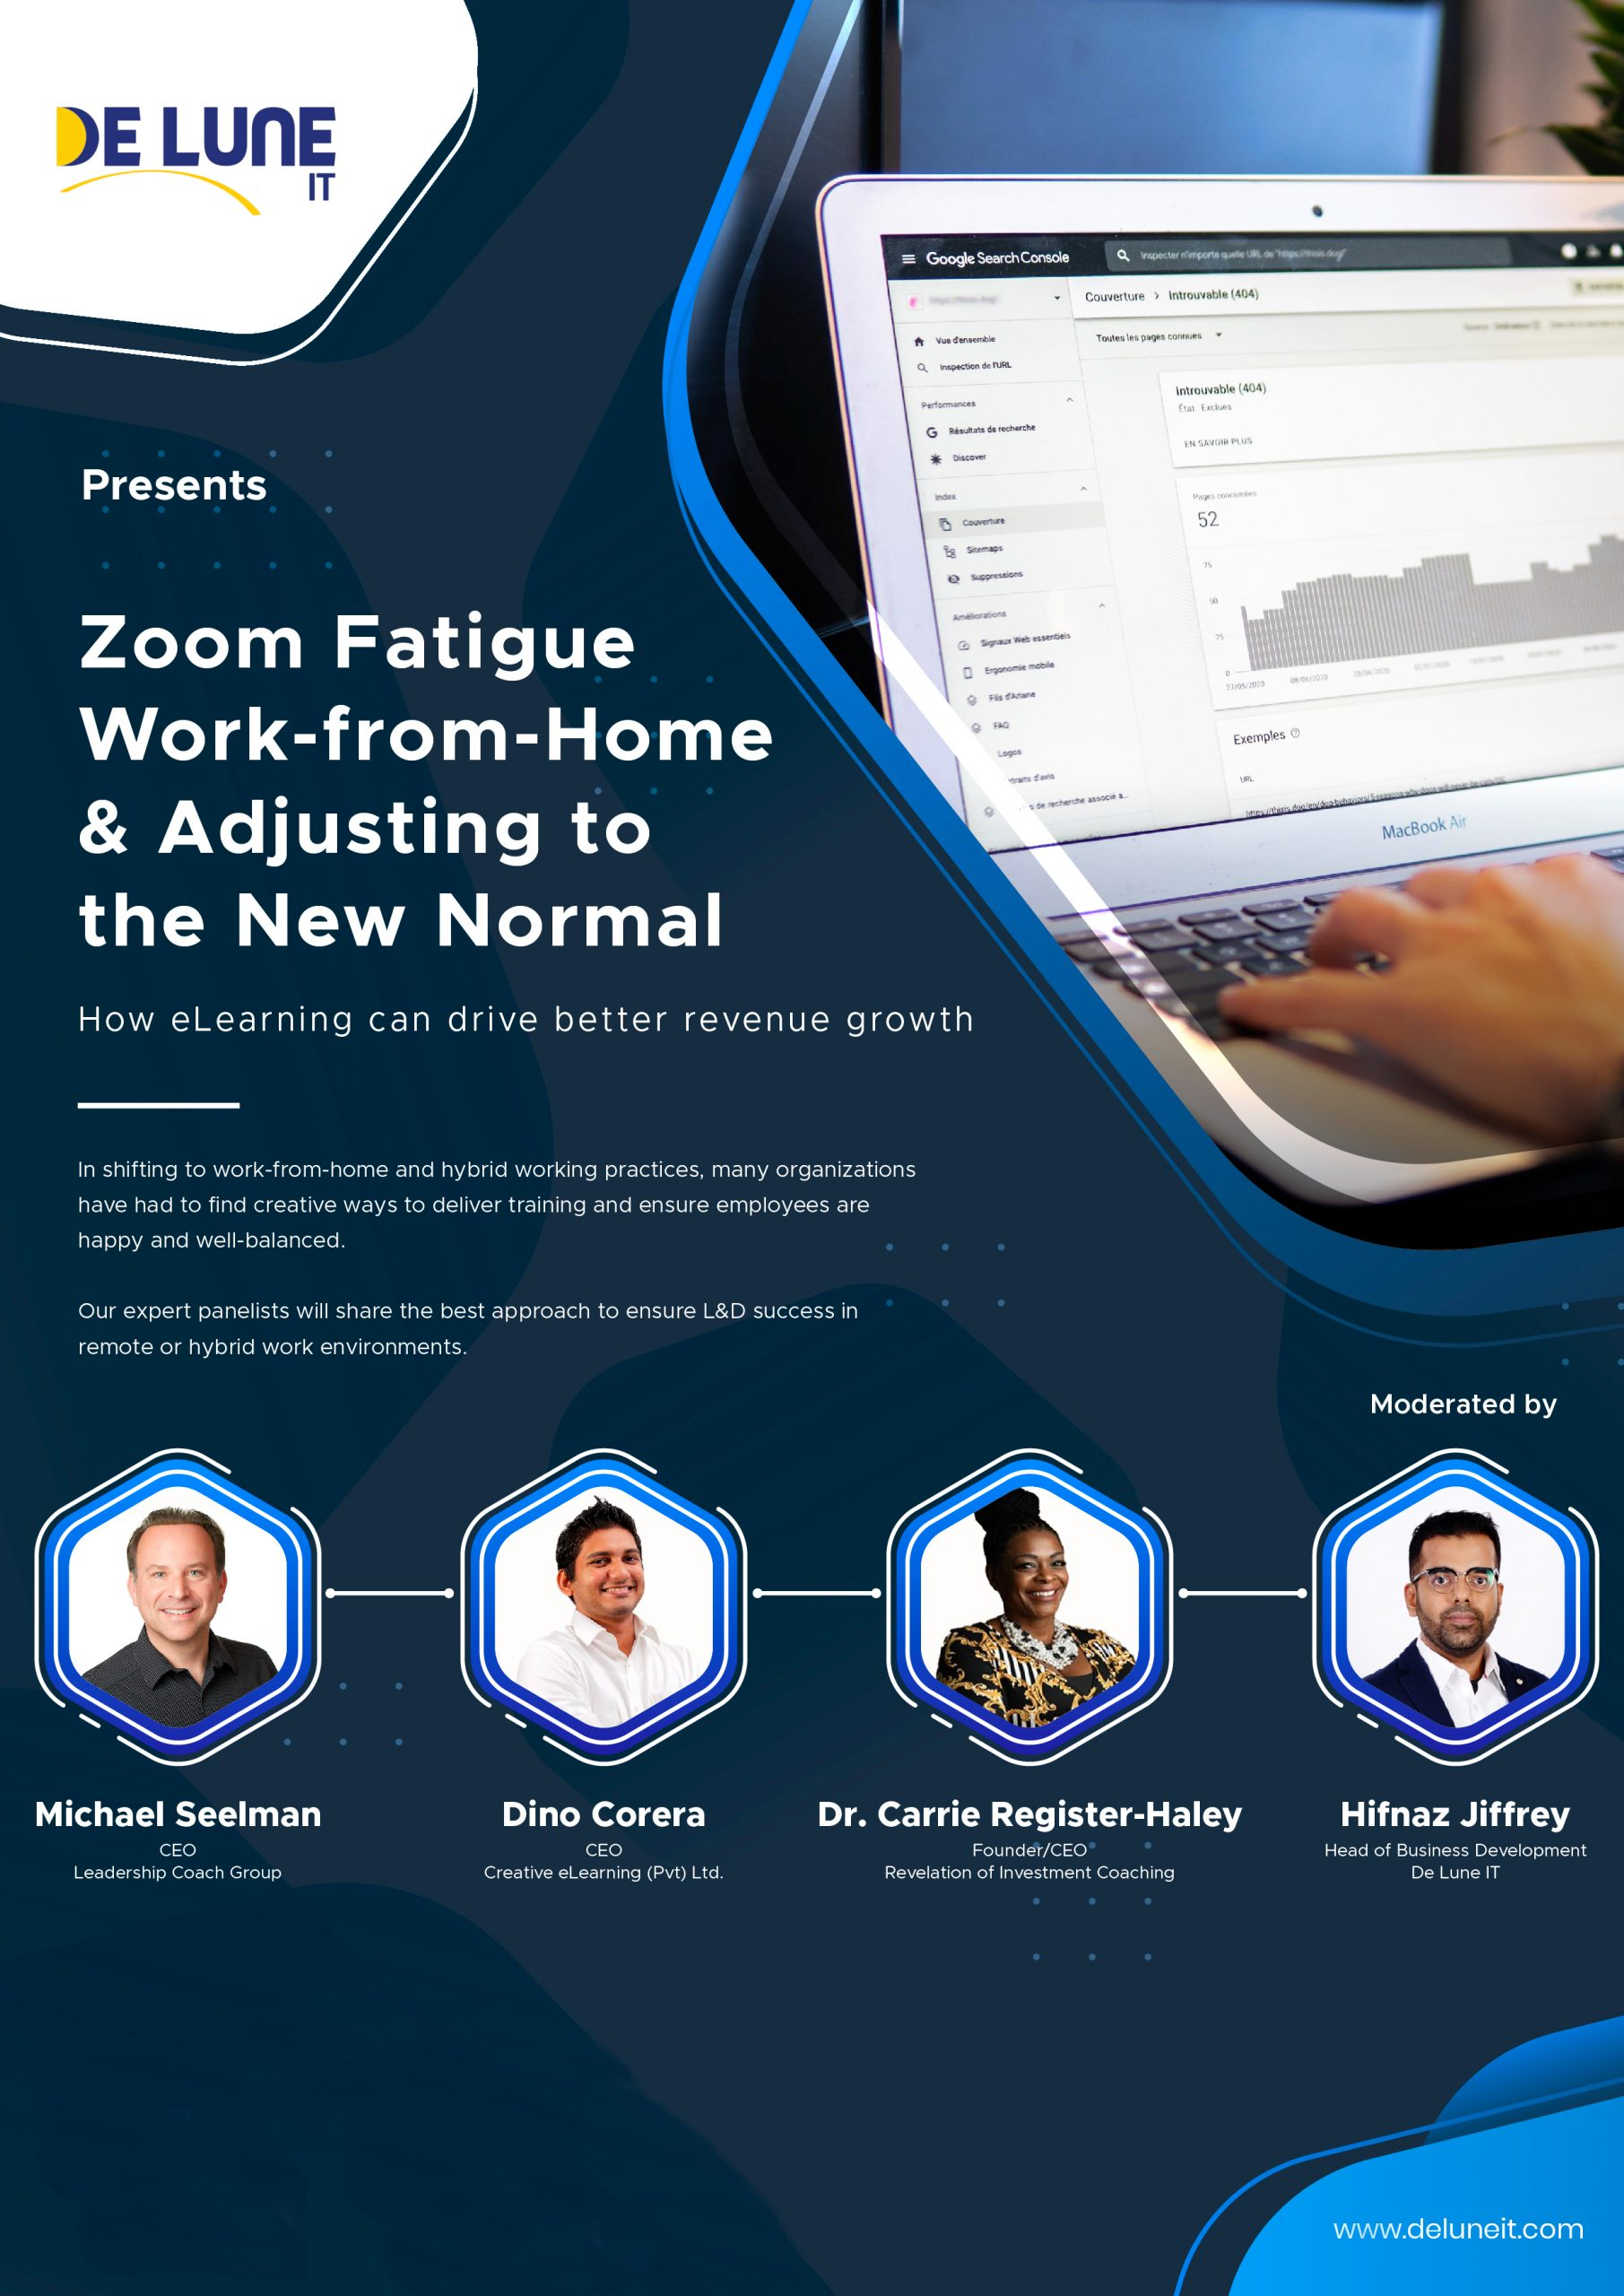 Zoom fatigue, Work-From-Home & Adjusting to the New Normal